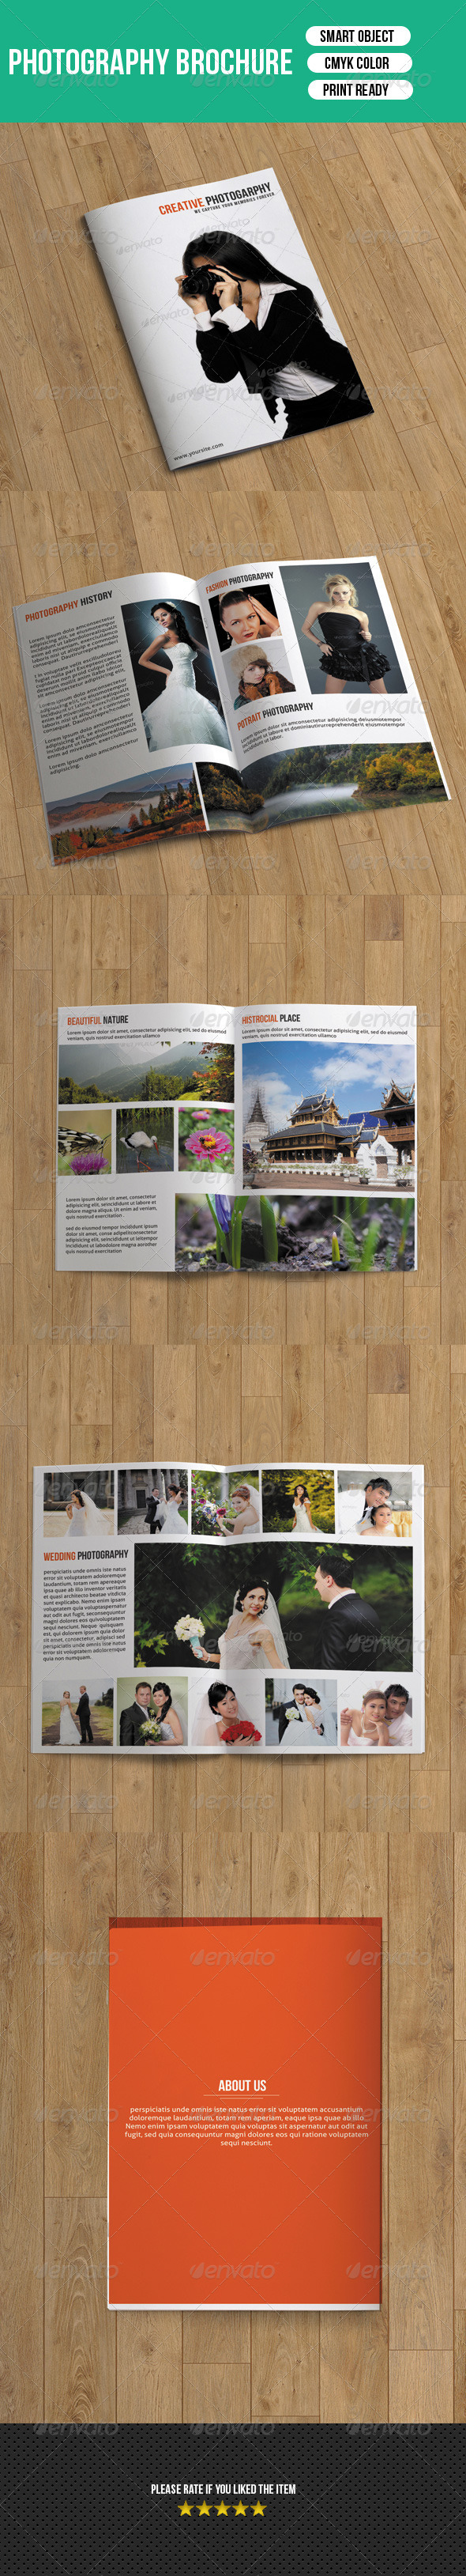 Photography Brochure-8 Pages